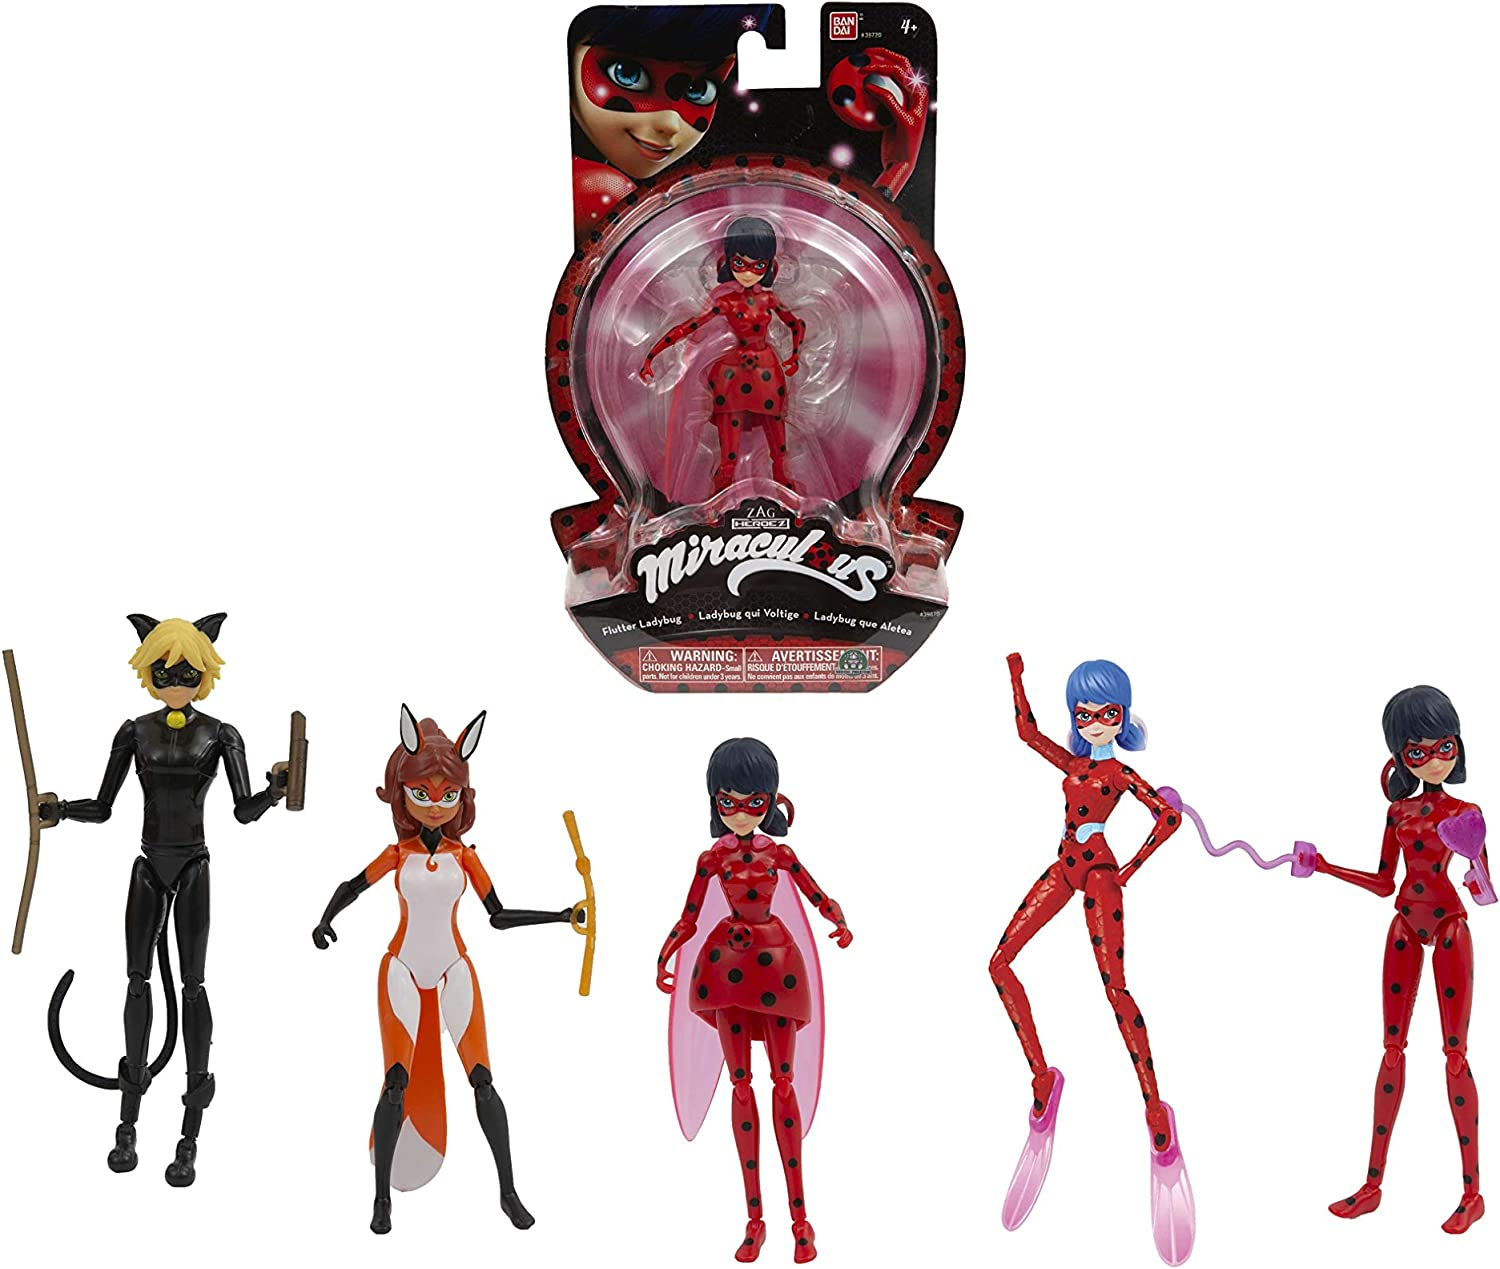 Giochi Preziosi Miraculous Action Figure 14Cm Assto 3 Personaggi E Playset, Multicolore, 8056379074472